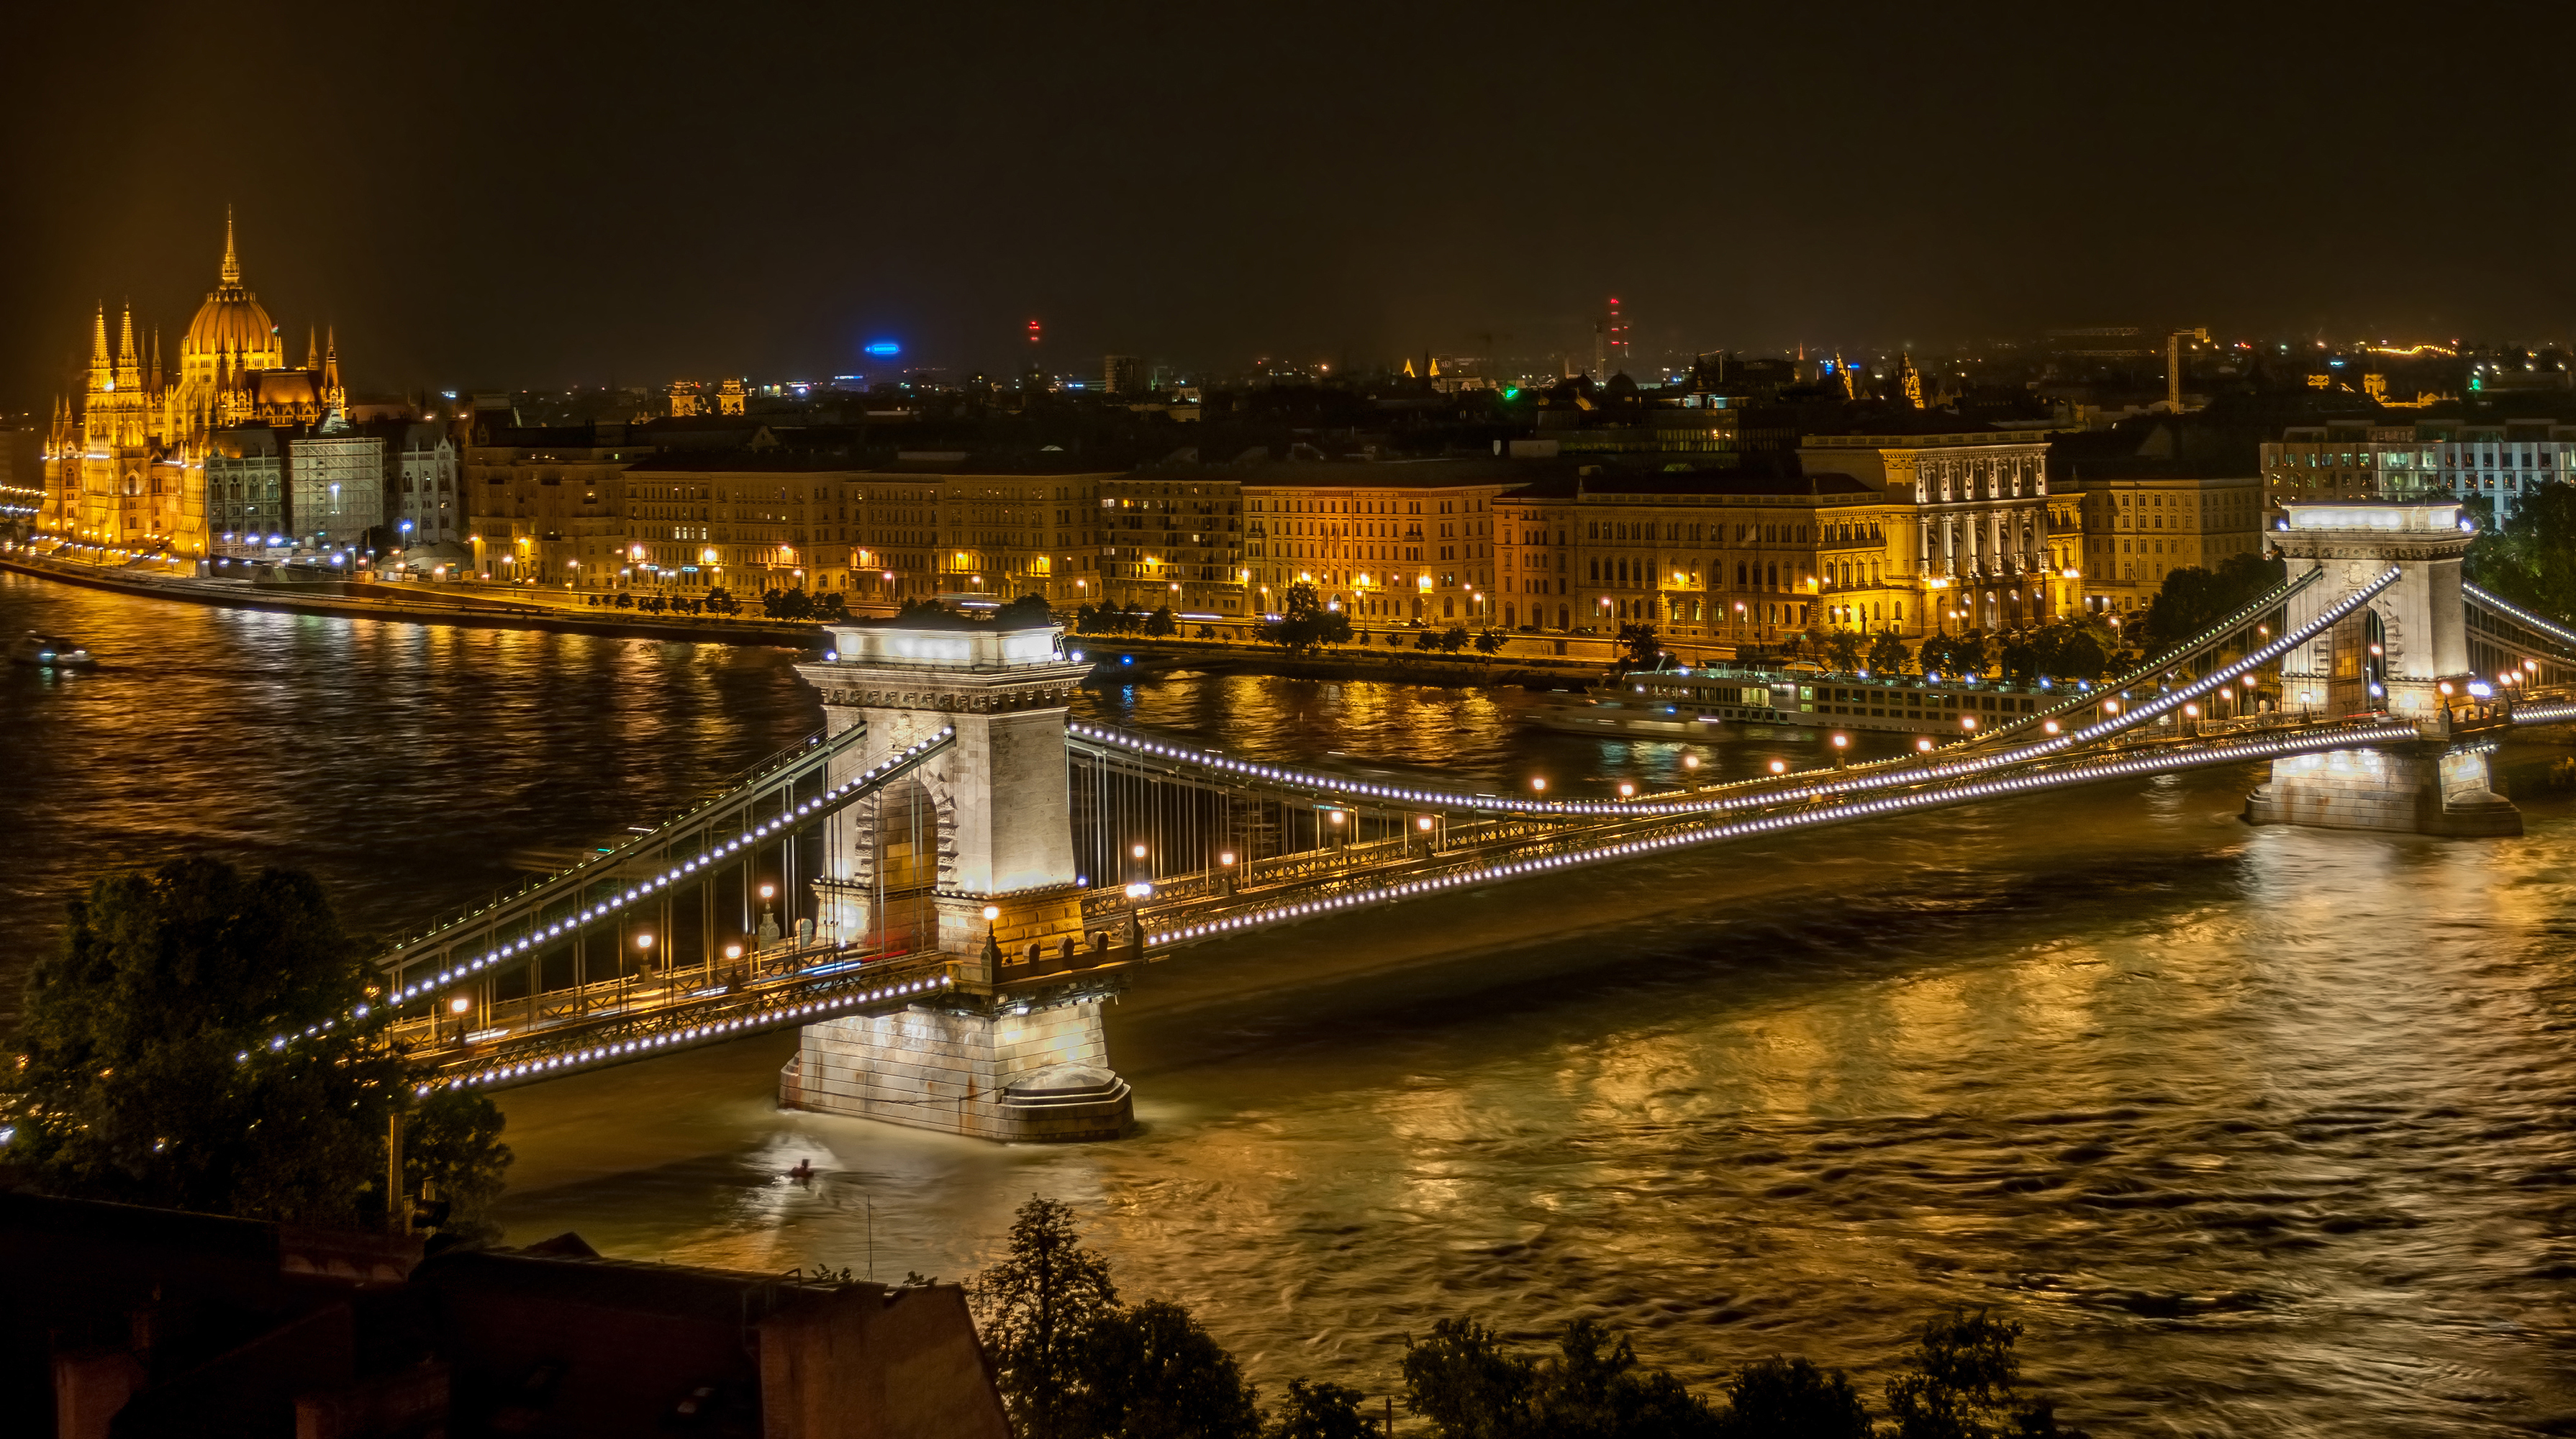 http://upload.wikimedia.org/wikipedia/commons/f/fd/Sz%C3%A9chenyi_Chain_Bridge_in_Budapest_at_night.jpg